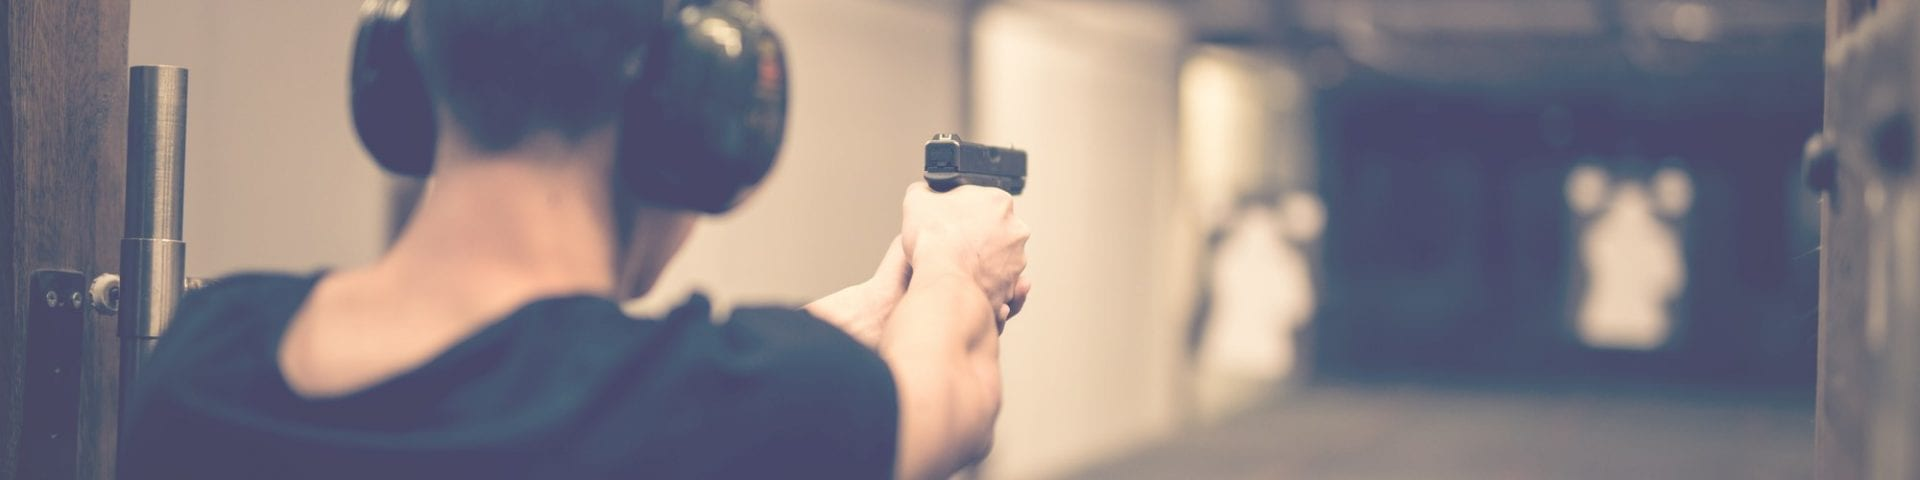 Lead Contamination in Indoor Firing/Gun Ranges